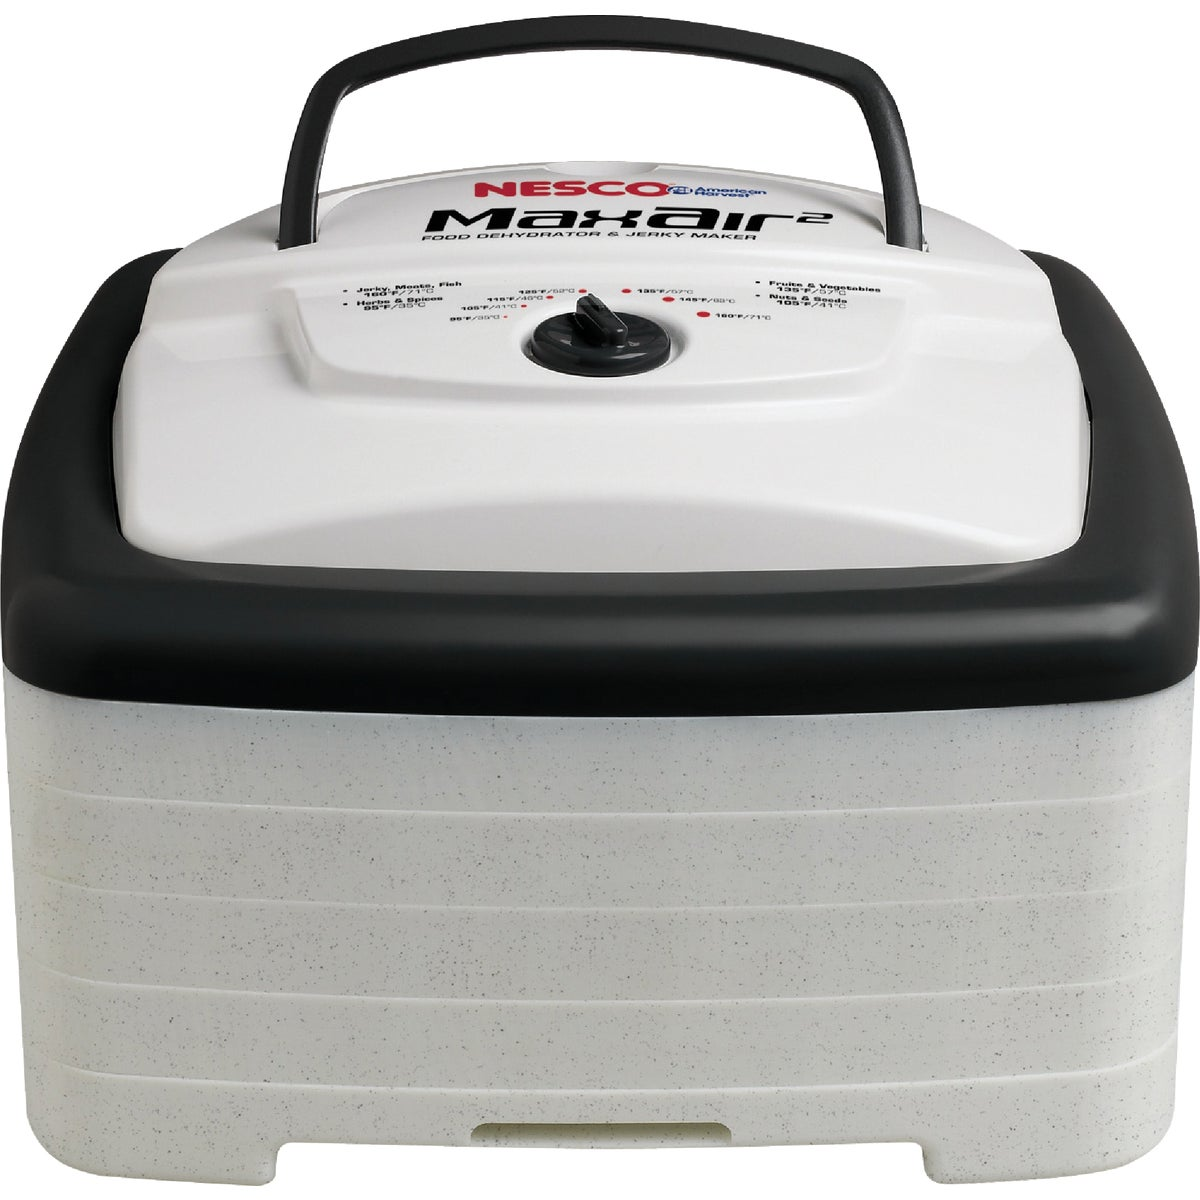 SQUARE DEHYDRATOR - FD-80 by Metal Ware Corp